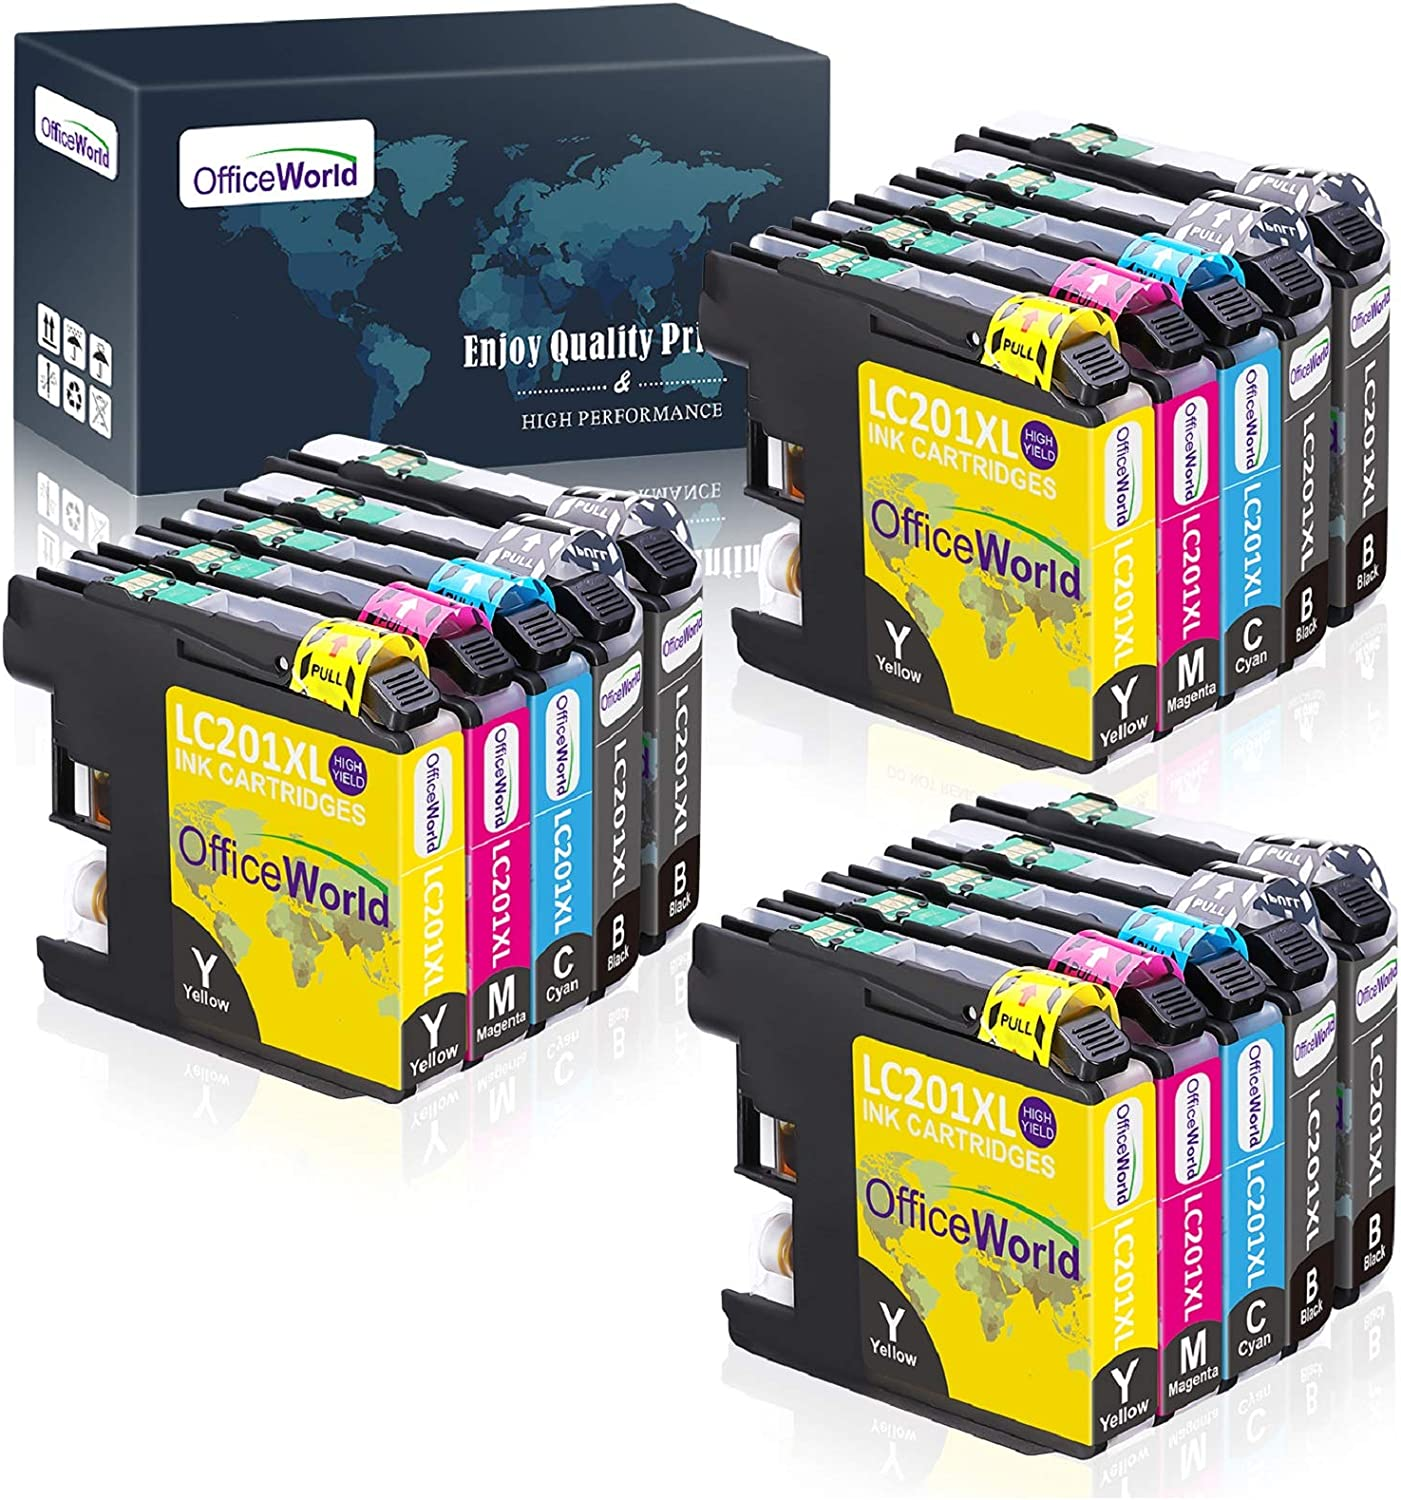 OfficeWorld Compatible LC 201 LC 203 Ink Cartridges Replacement for Brother LC201XL LC203XL, for MFC-J480DW MFC-J880DW MFC-J4420DW MFC-J680DW MFC-J885DW 15 Pack(6 Black,3 Cyan,3 Magenta,3 Yellow)